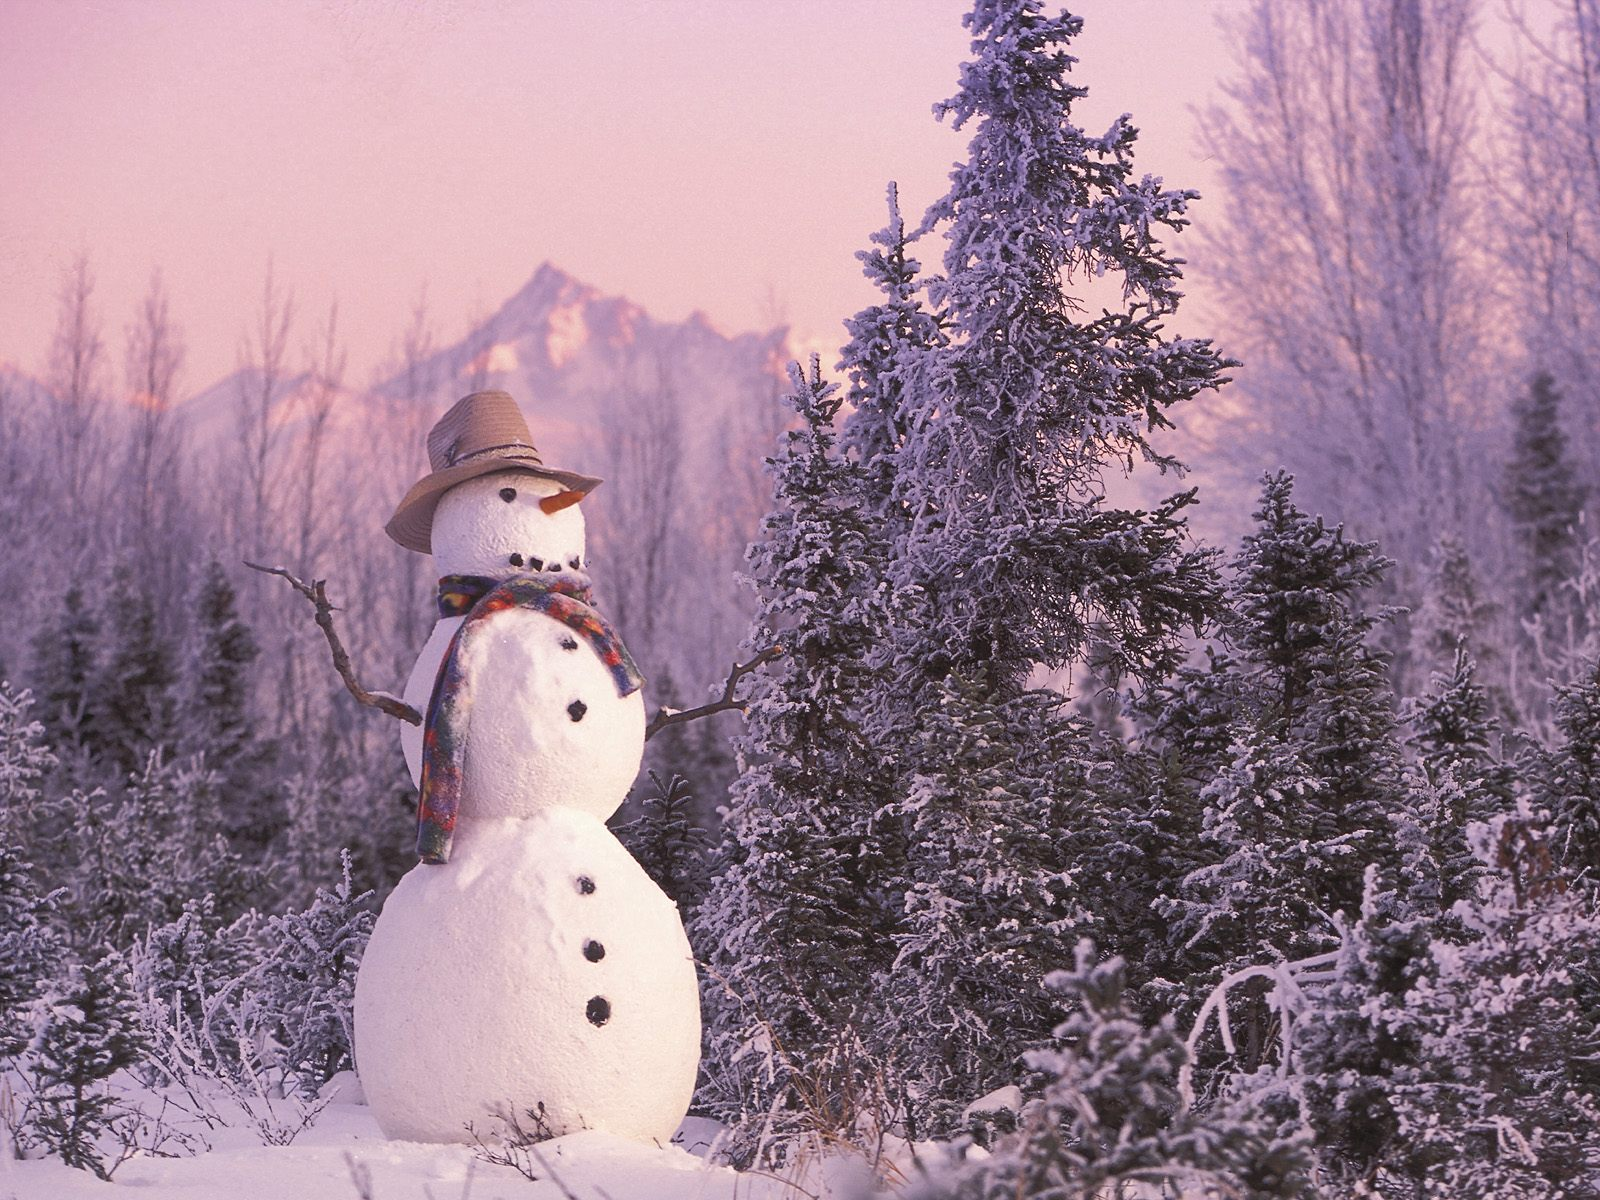 Frosty the Snowman wallpaper 1600x1200